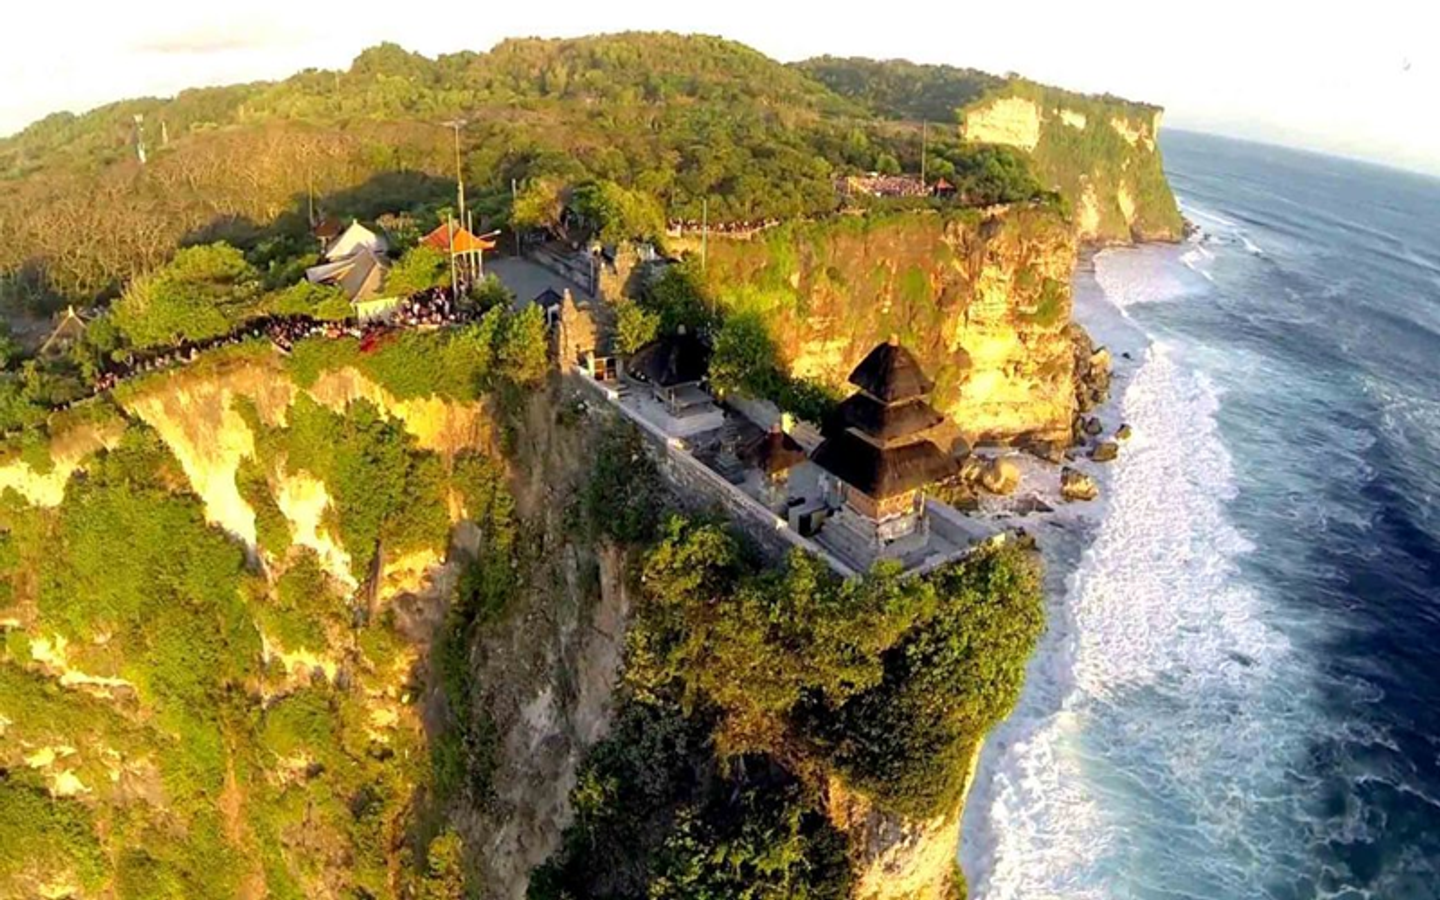 EXPLORE BALI - HD ULUWATU & KECAK FIRE DANCE TOUR